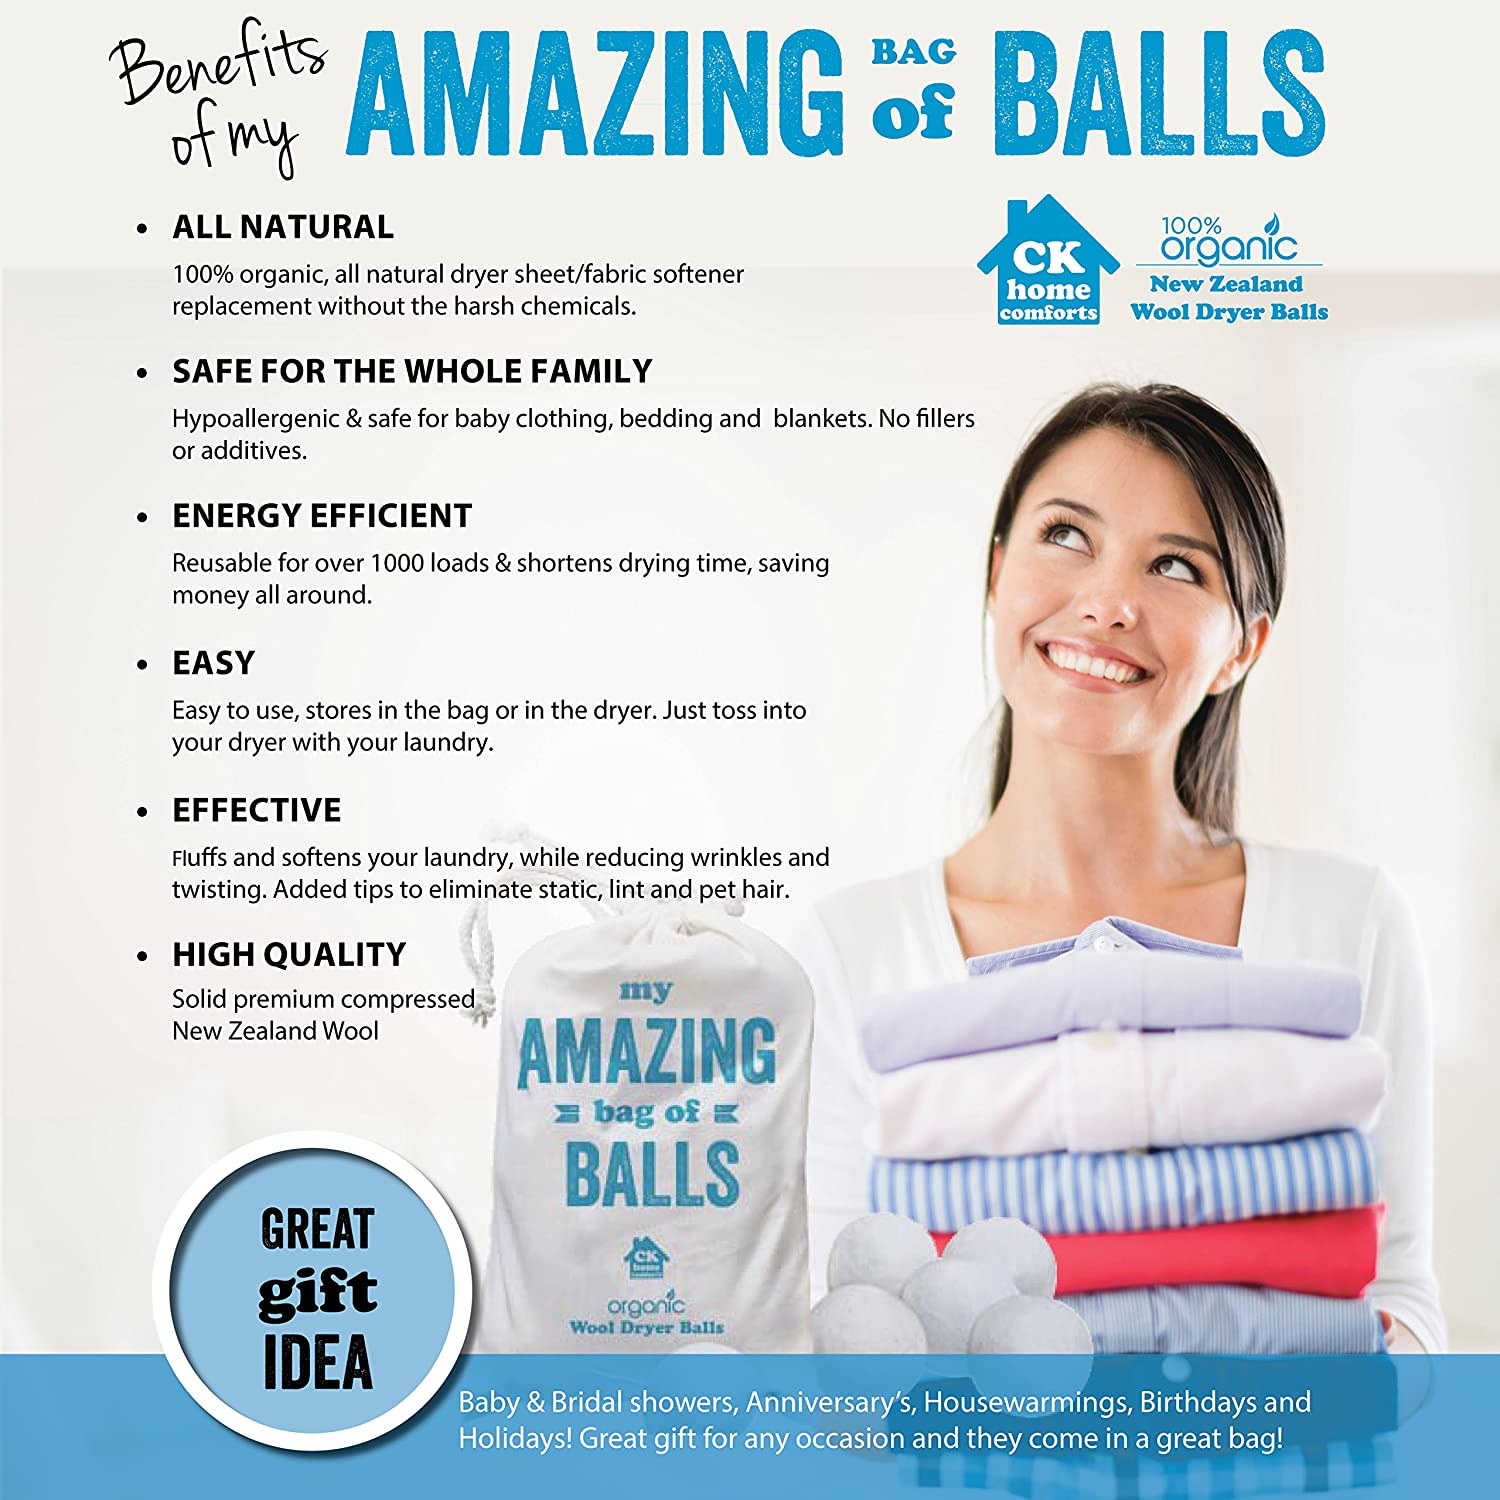 Amazon.com: Wool Dryer balls, 6 XL, Premium Organic New Zealand Wool,  Reusable All Natural Fabric Softener. Baby Safe, Reduces Wrinkles, Softens  Clothing ...